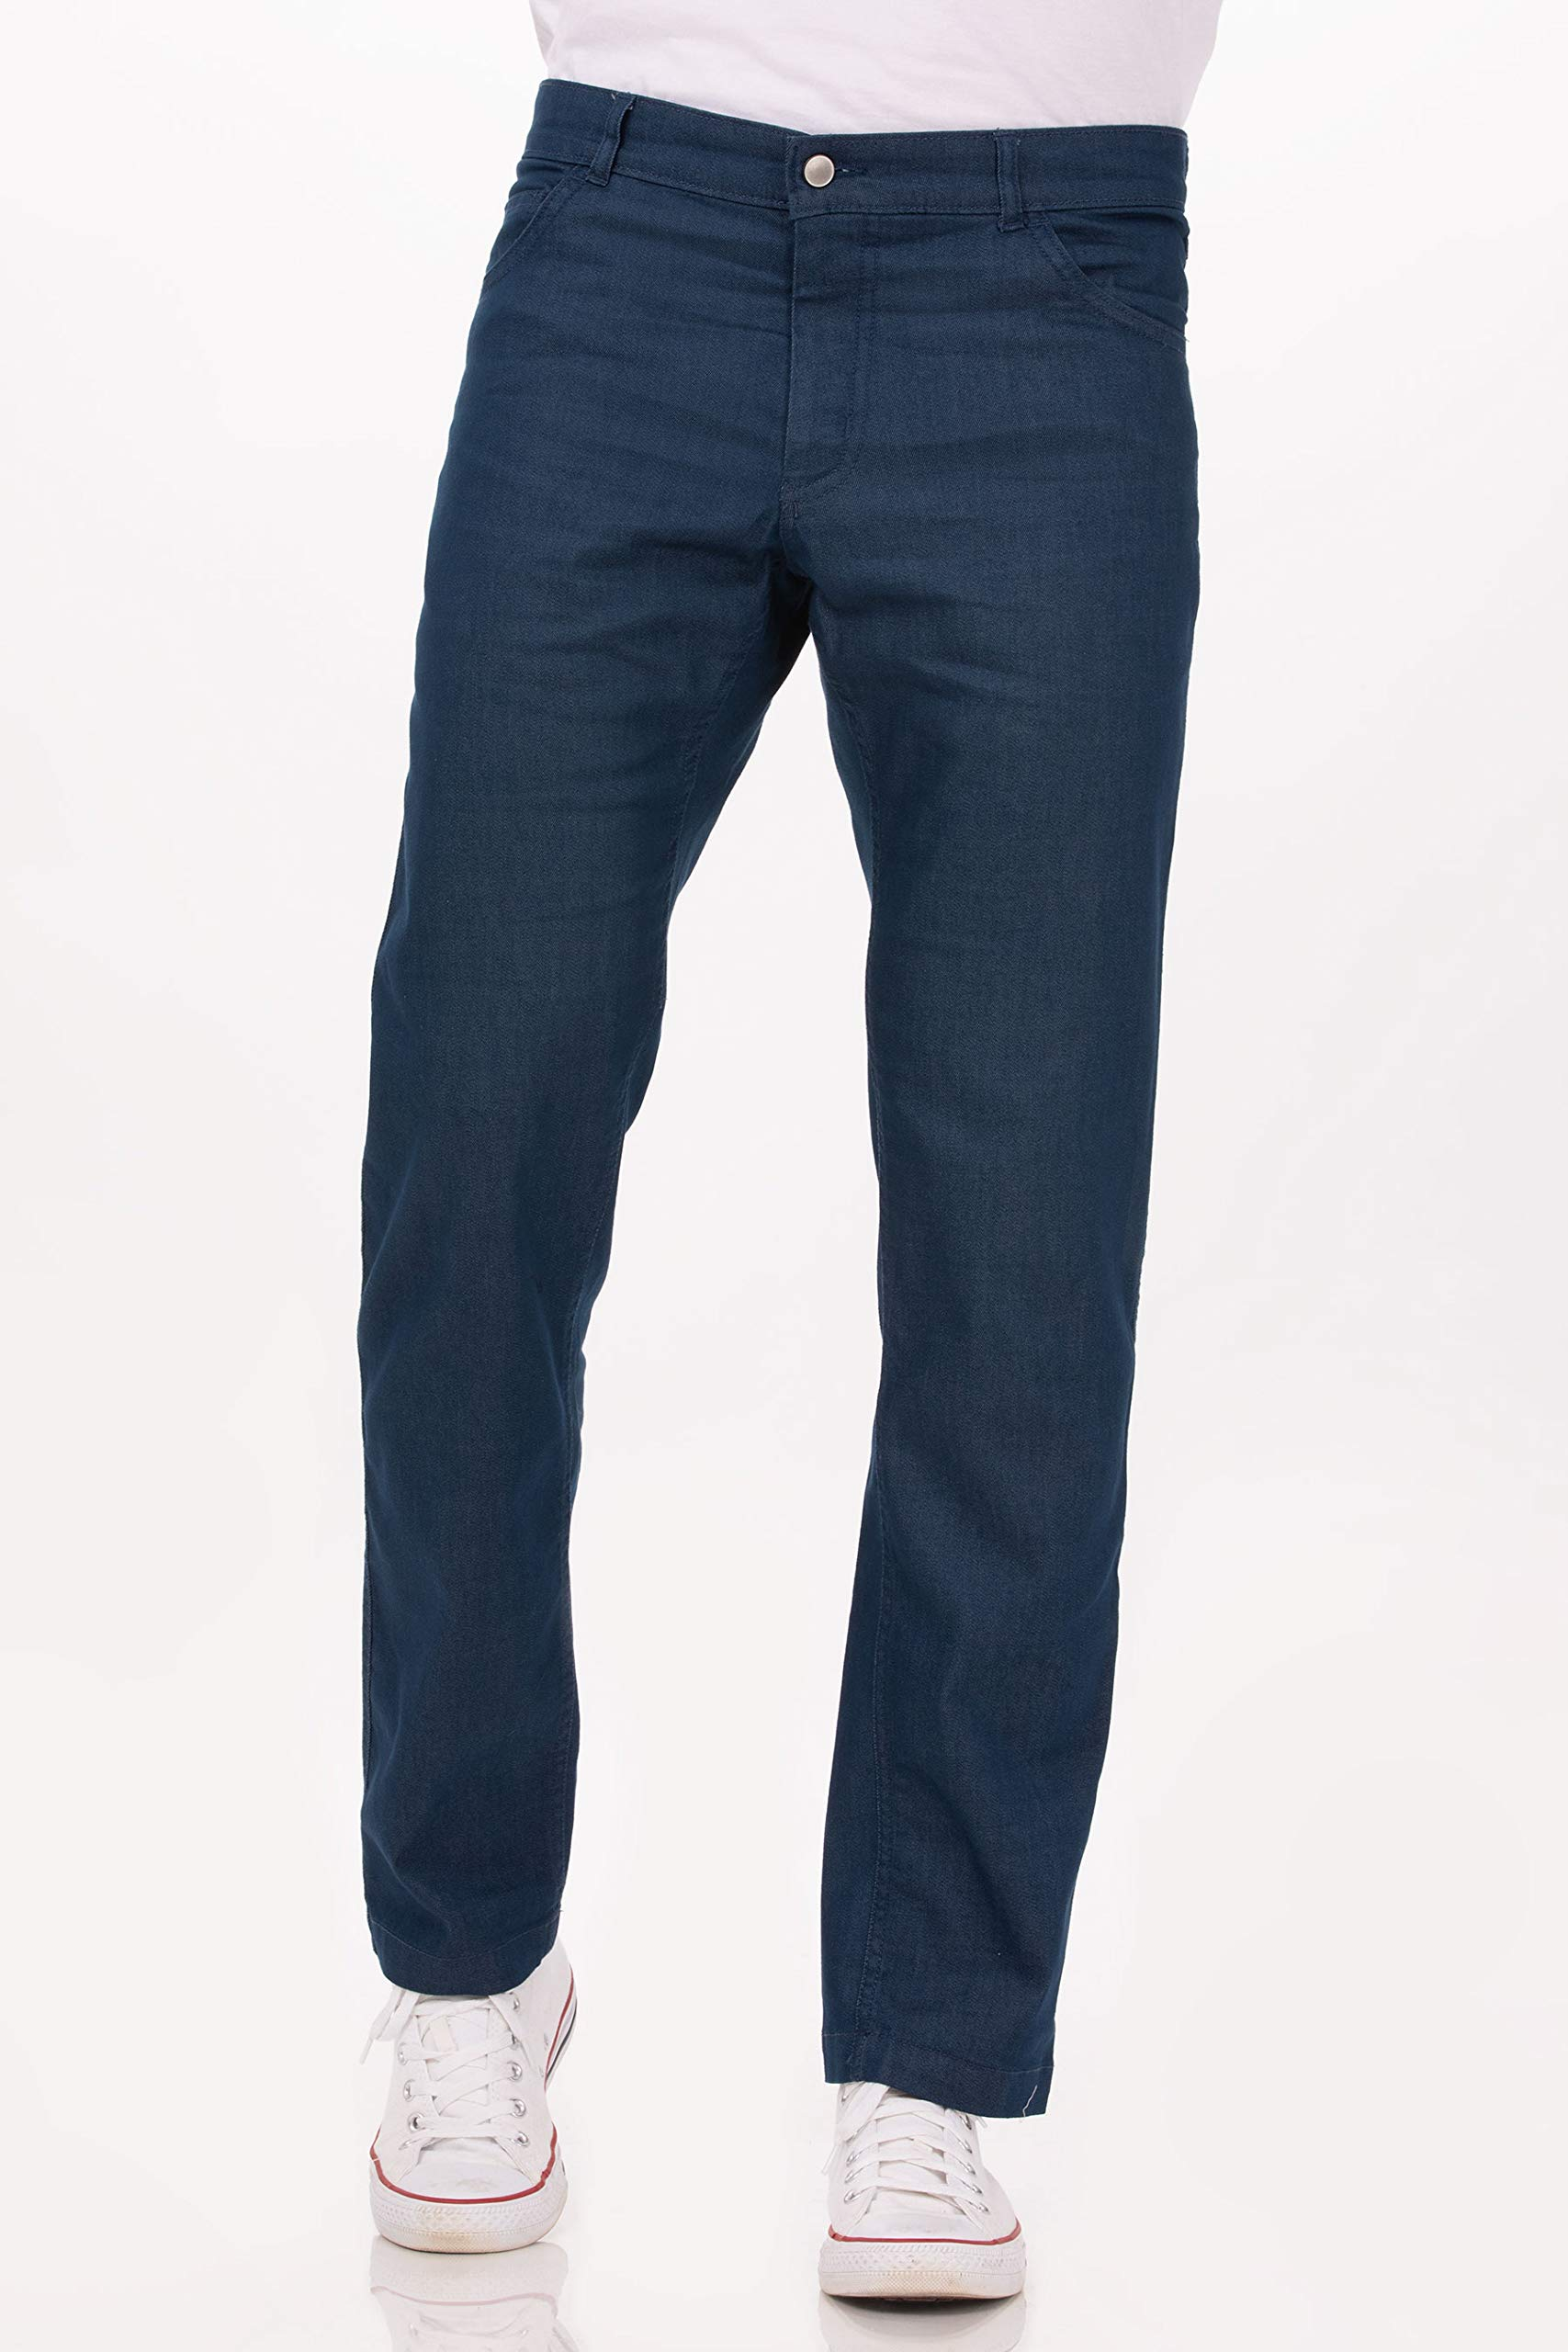 Chef Works Men's Modern 539 Constructed Chef Pants, Indigo Blue, 32 by Chef Works